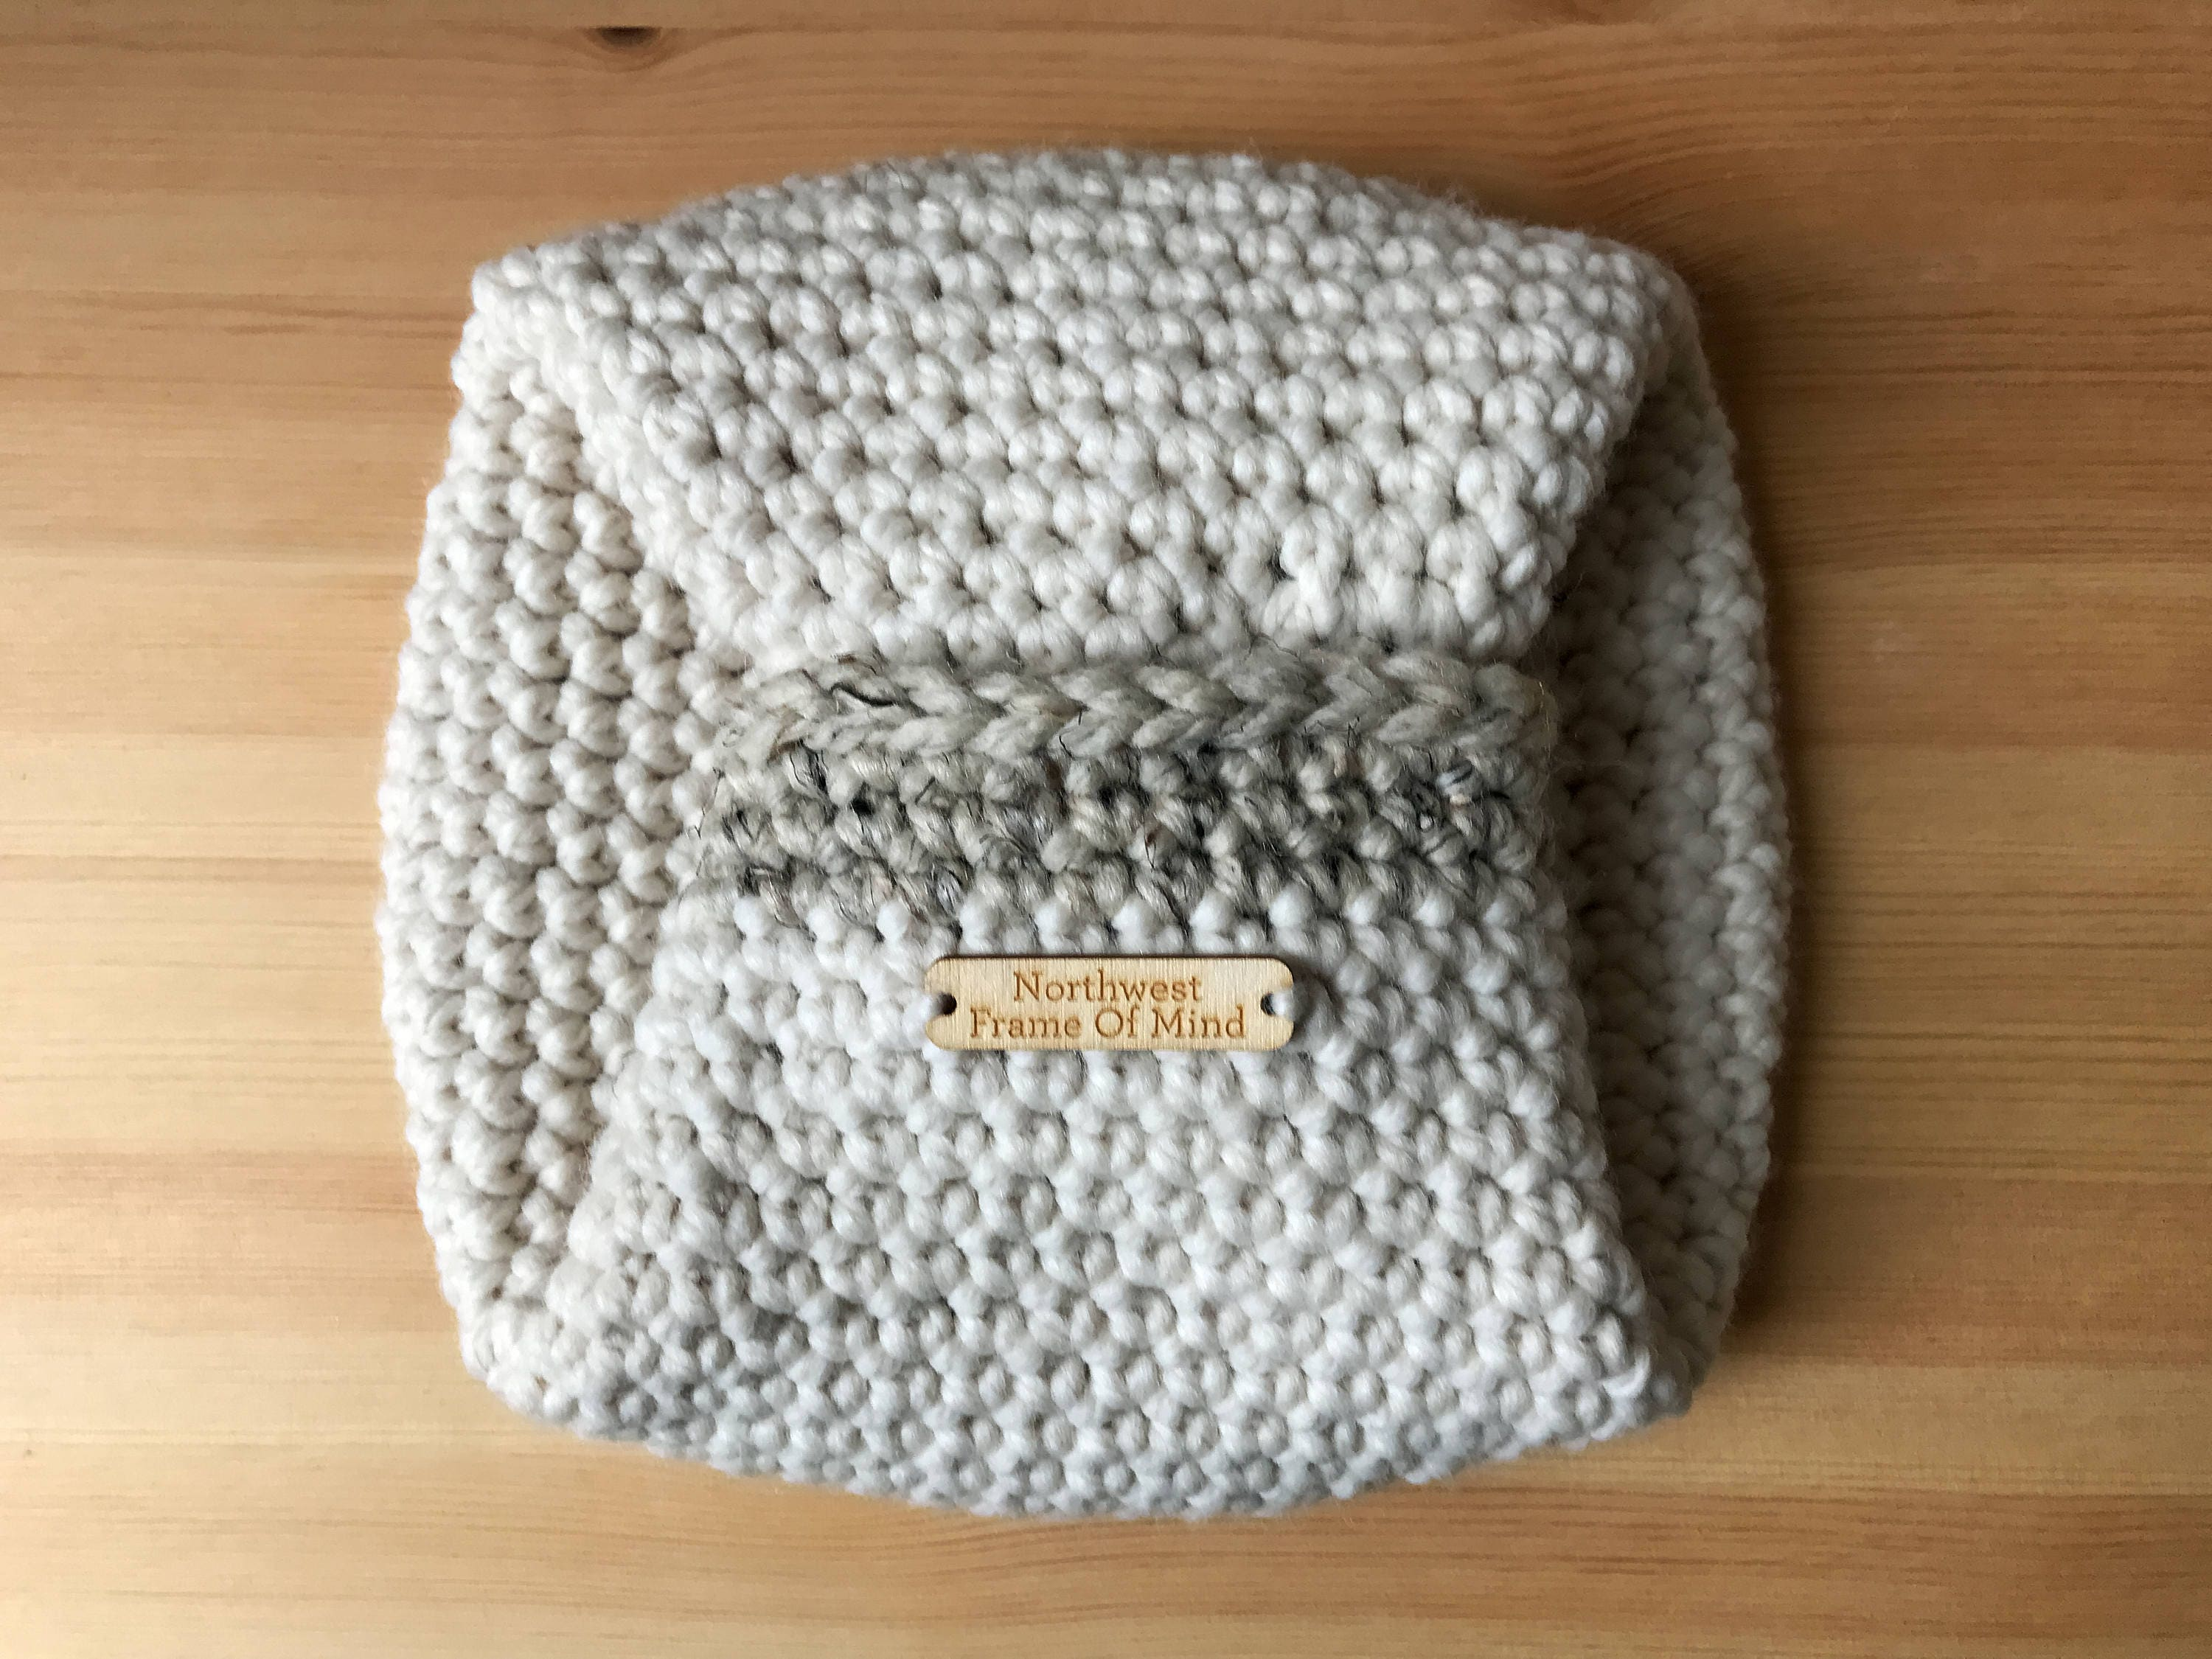 Large Round Crochet Basket With Handles